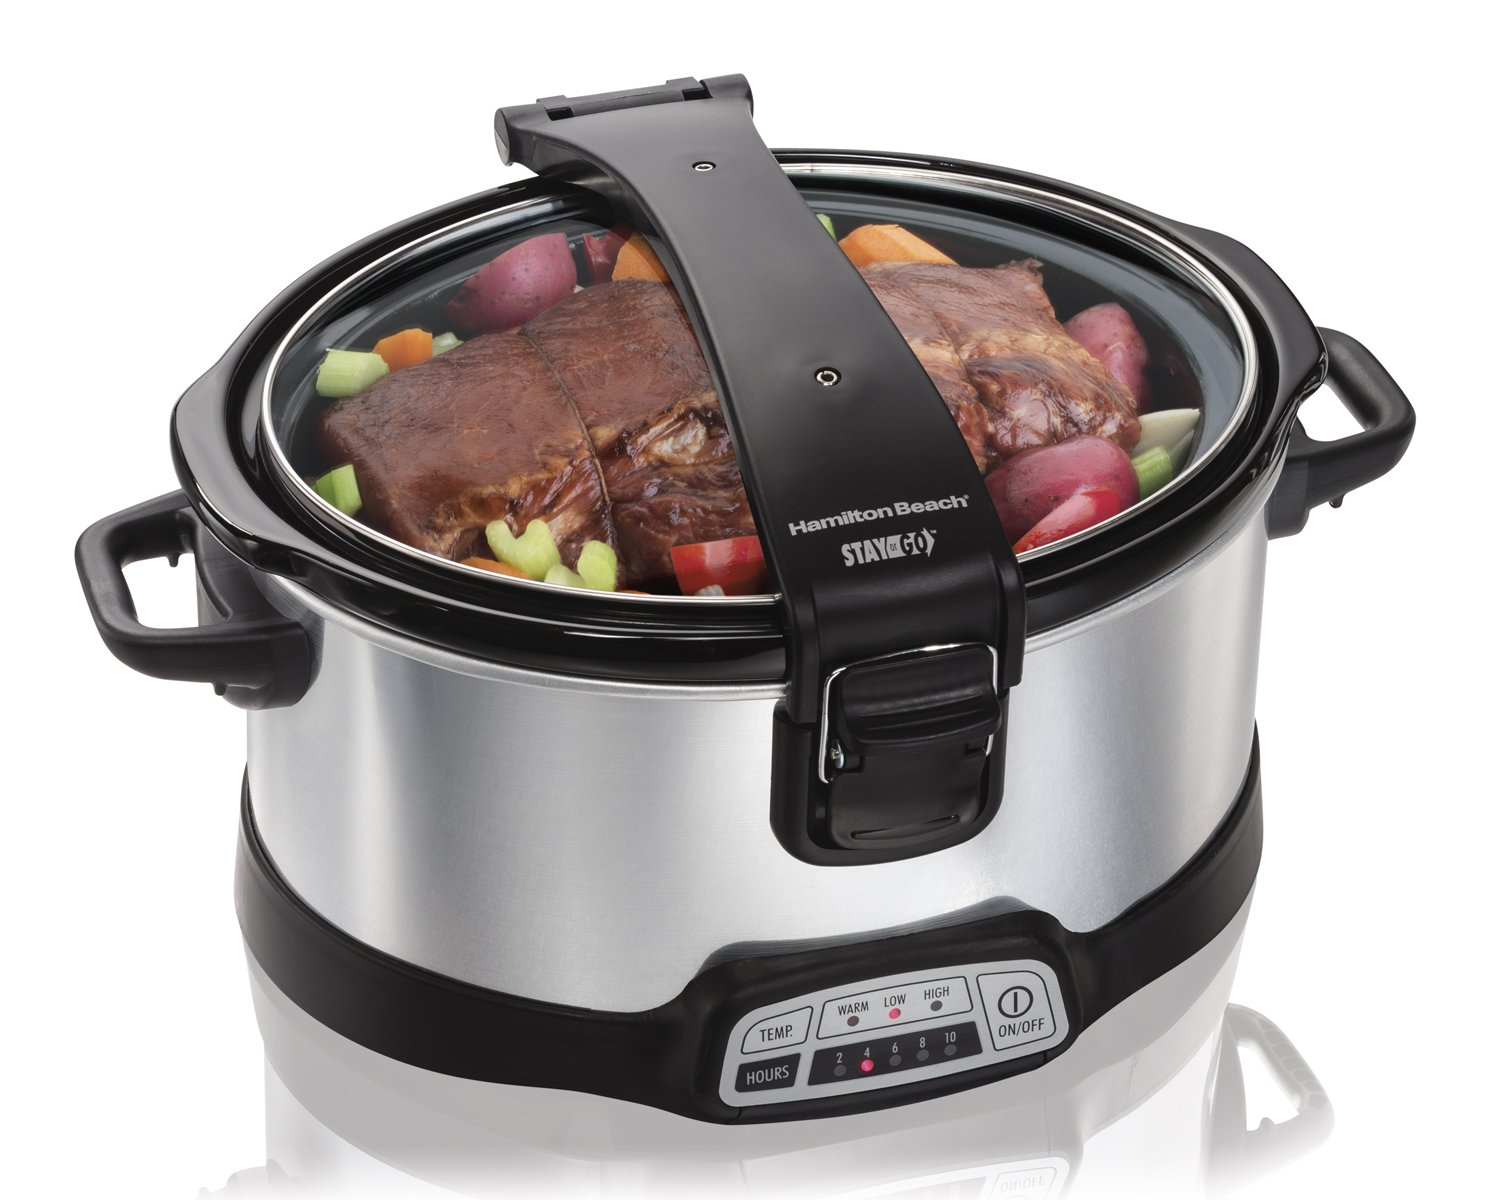 Hamilton Beach 33467 Programmable Stay or Go Slow Cooker, 6-Quart